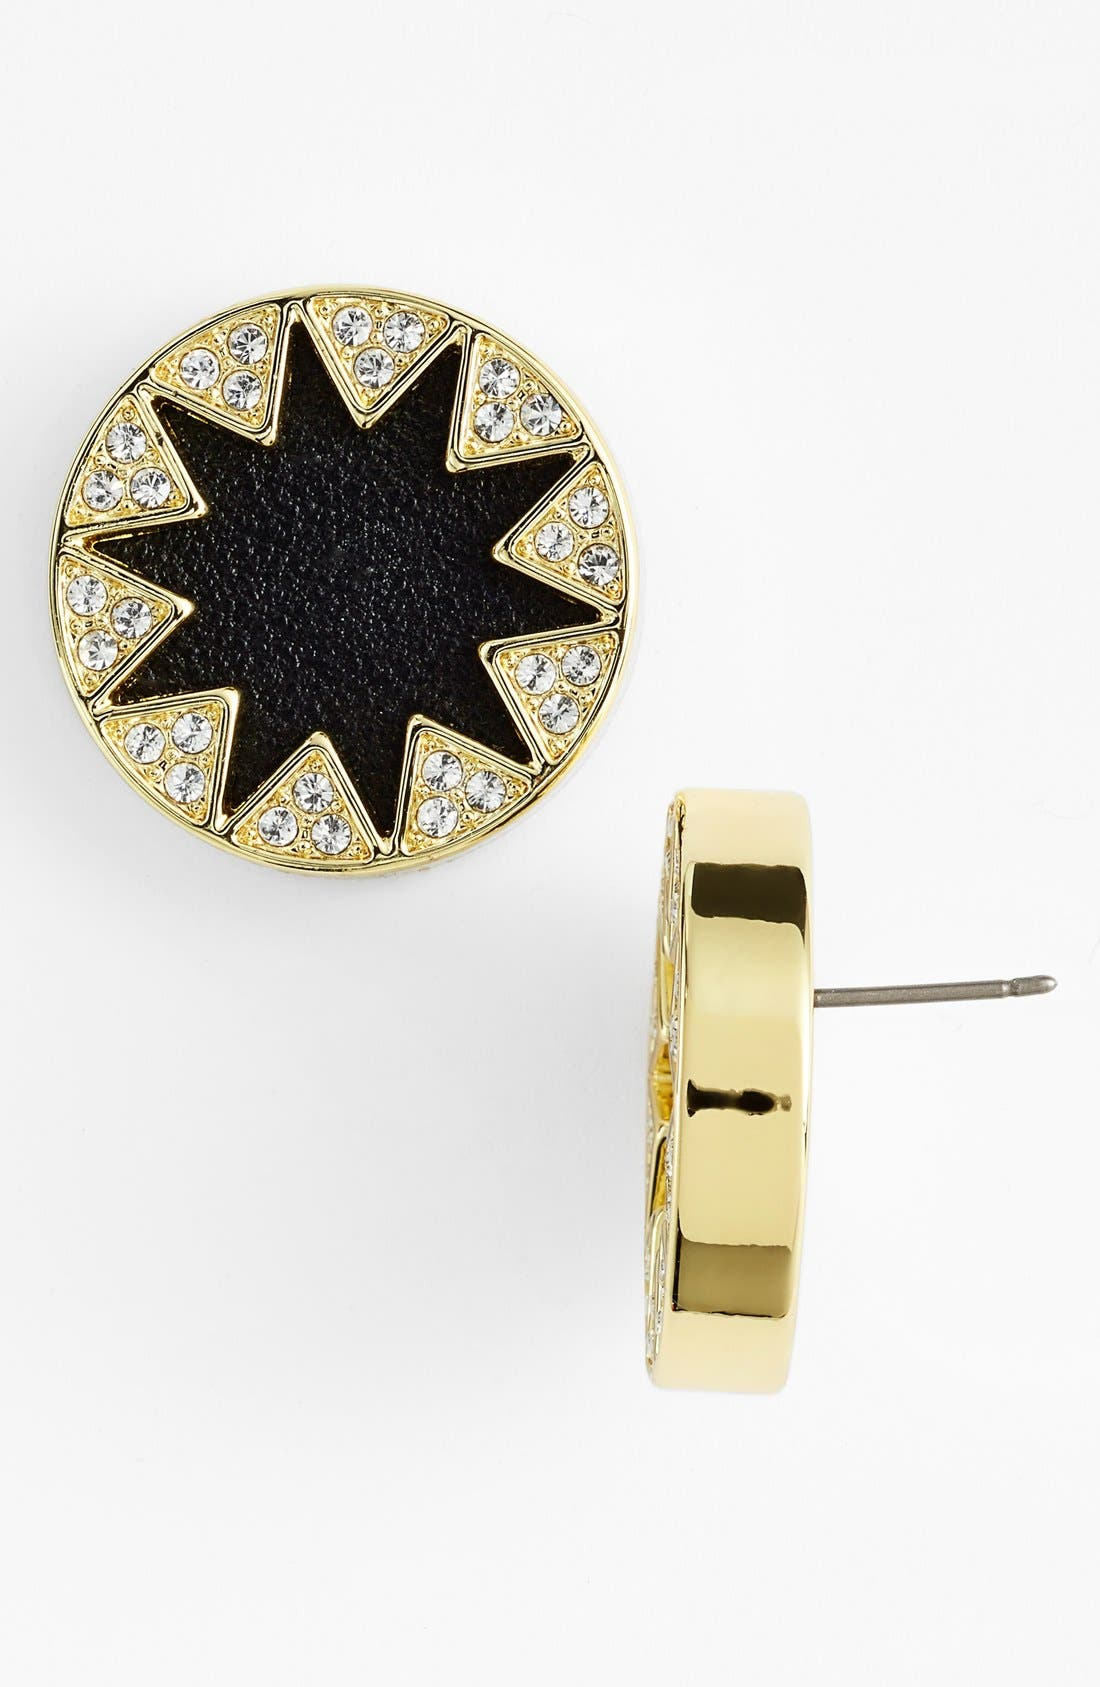 Main Image - House of Harlow 1960 Sunburst Stud Earrings